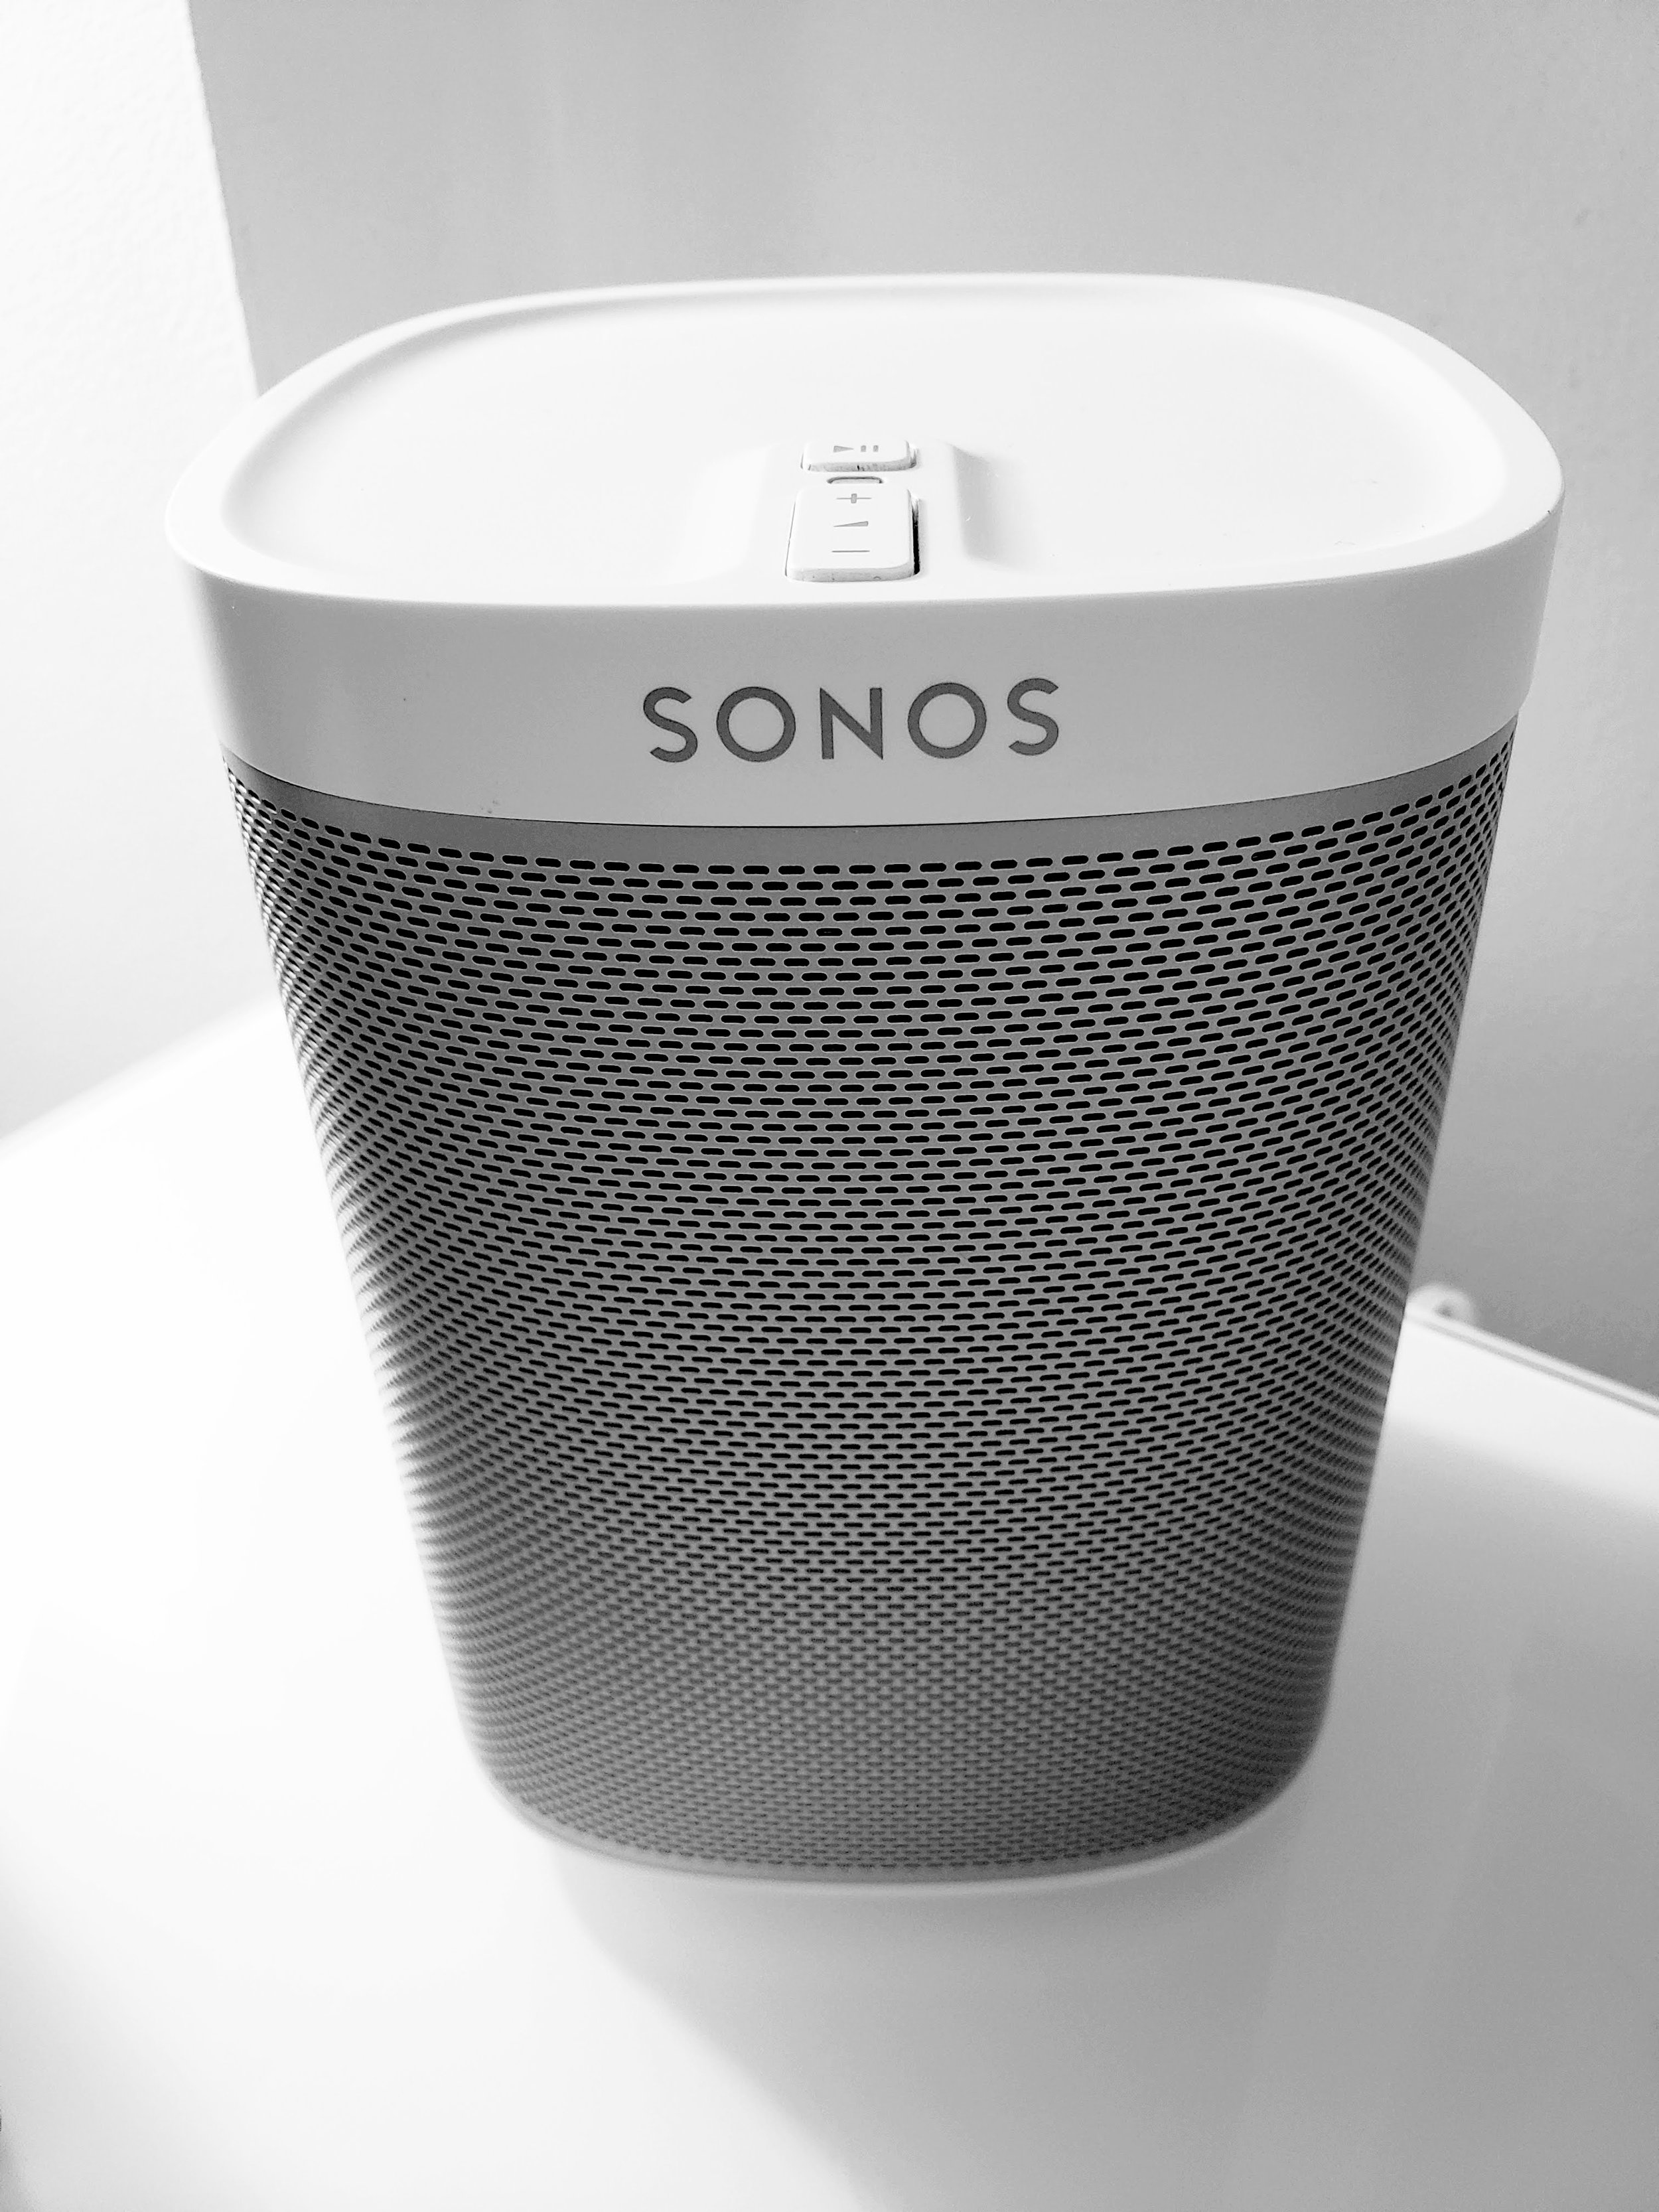 Sonos Play 1 Review 2019: The  Sonos Play 1  maintains the simplicity it was designed with 3 buttons. Play/Pause, Volume Up, Volume Down.